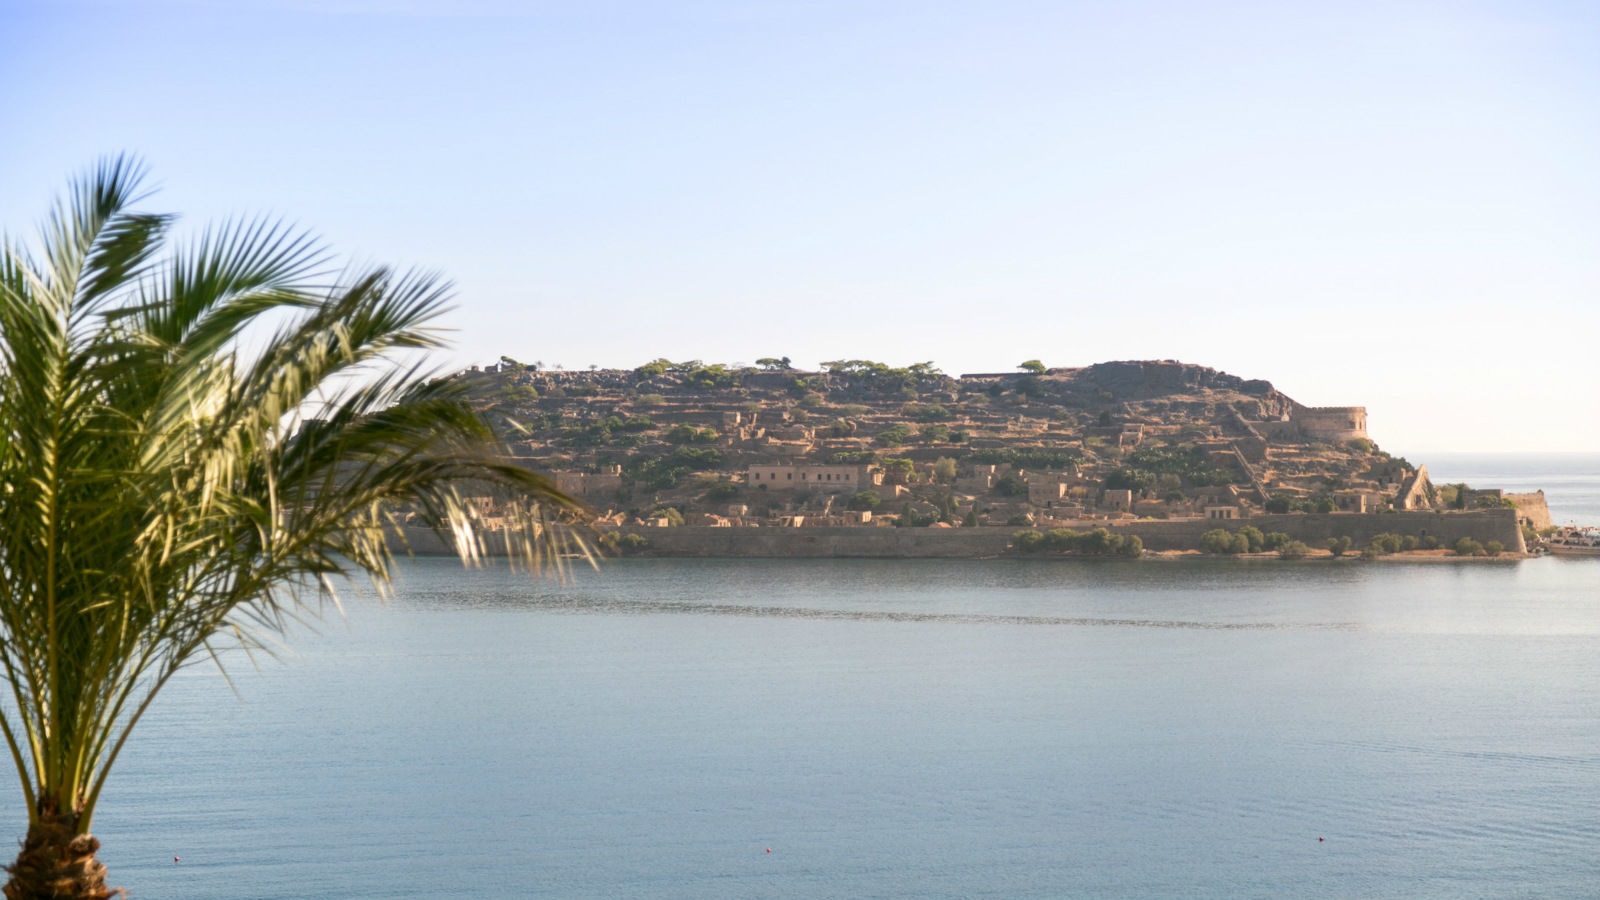 The island of Spinalonga, Elounda, Crete, Greece across Blue Palace resort and spa